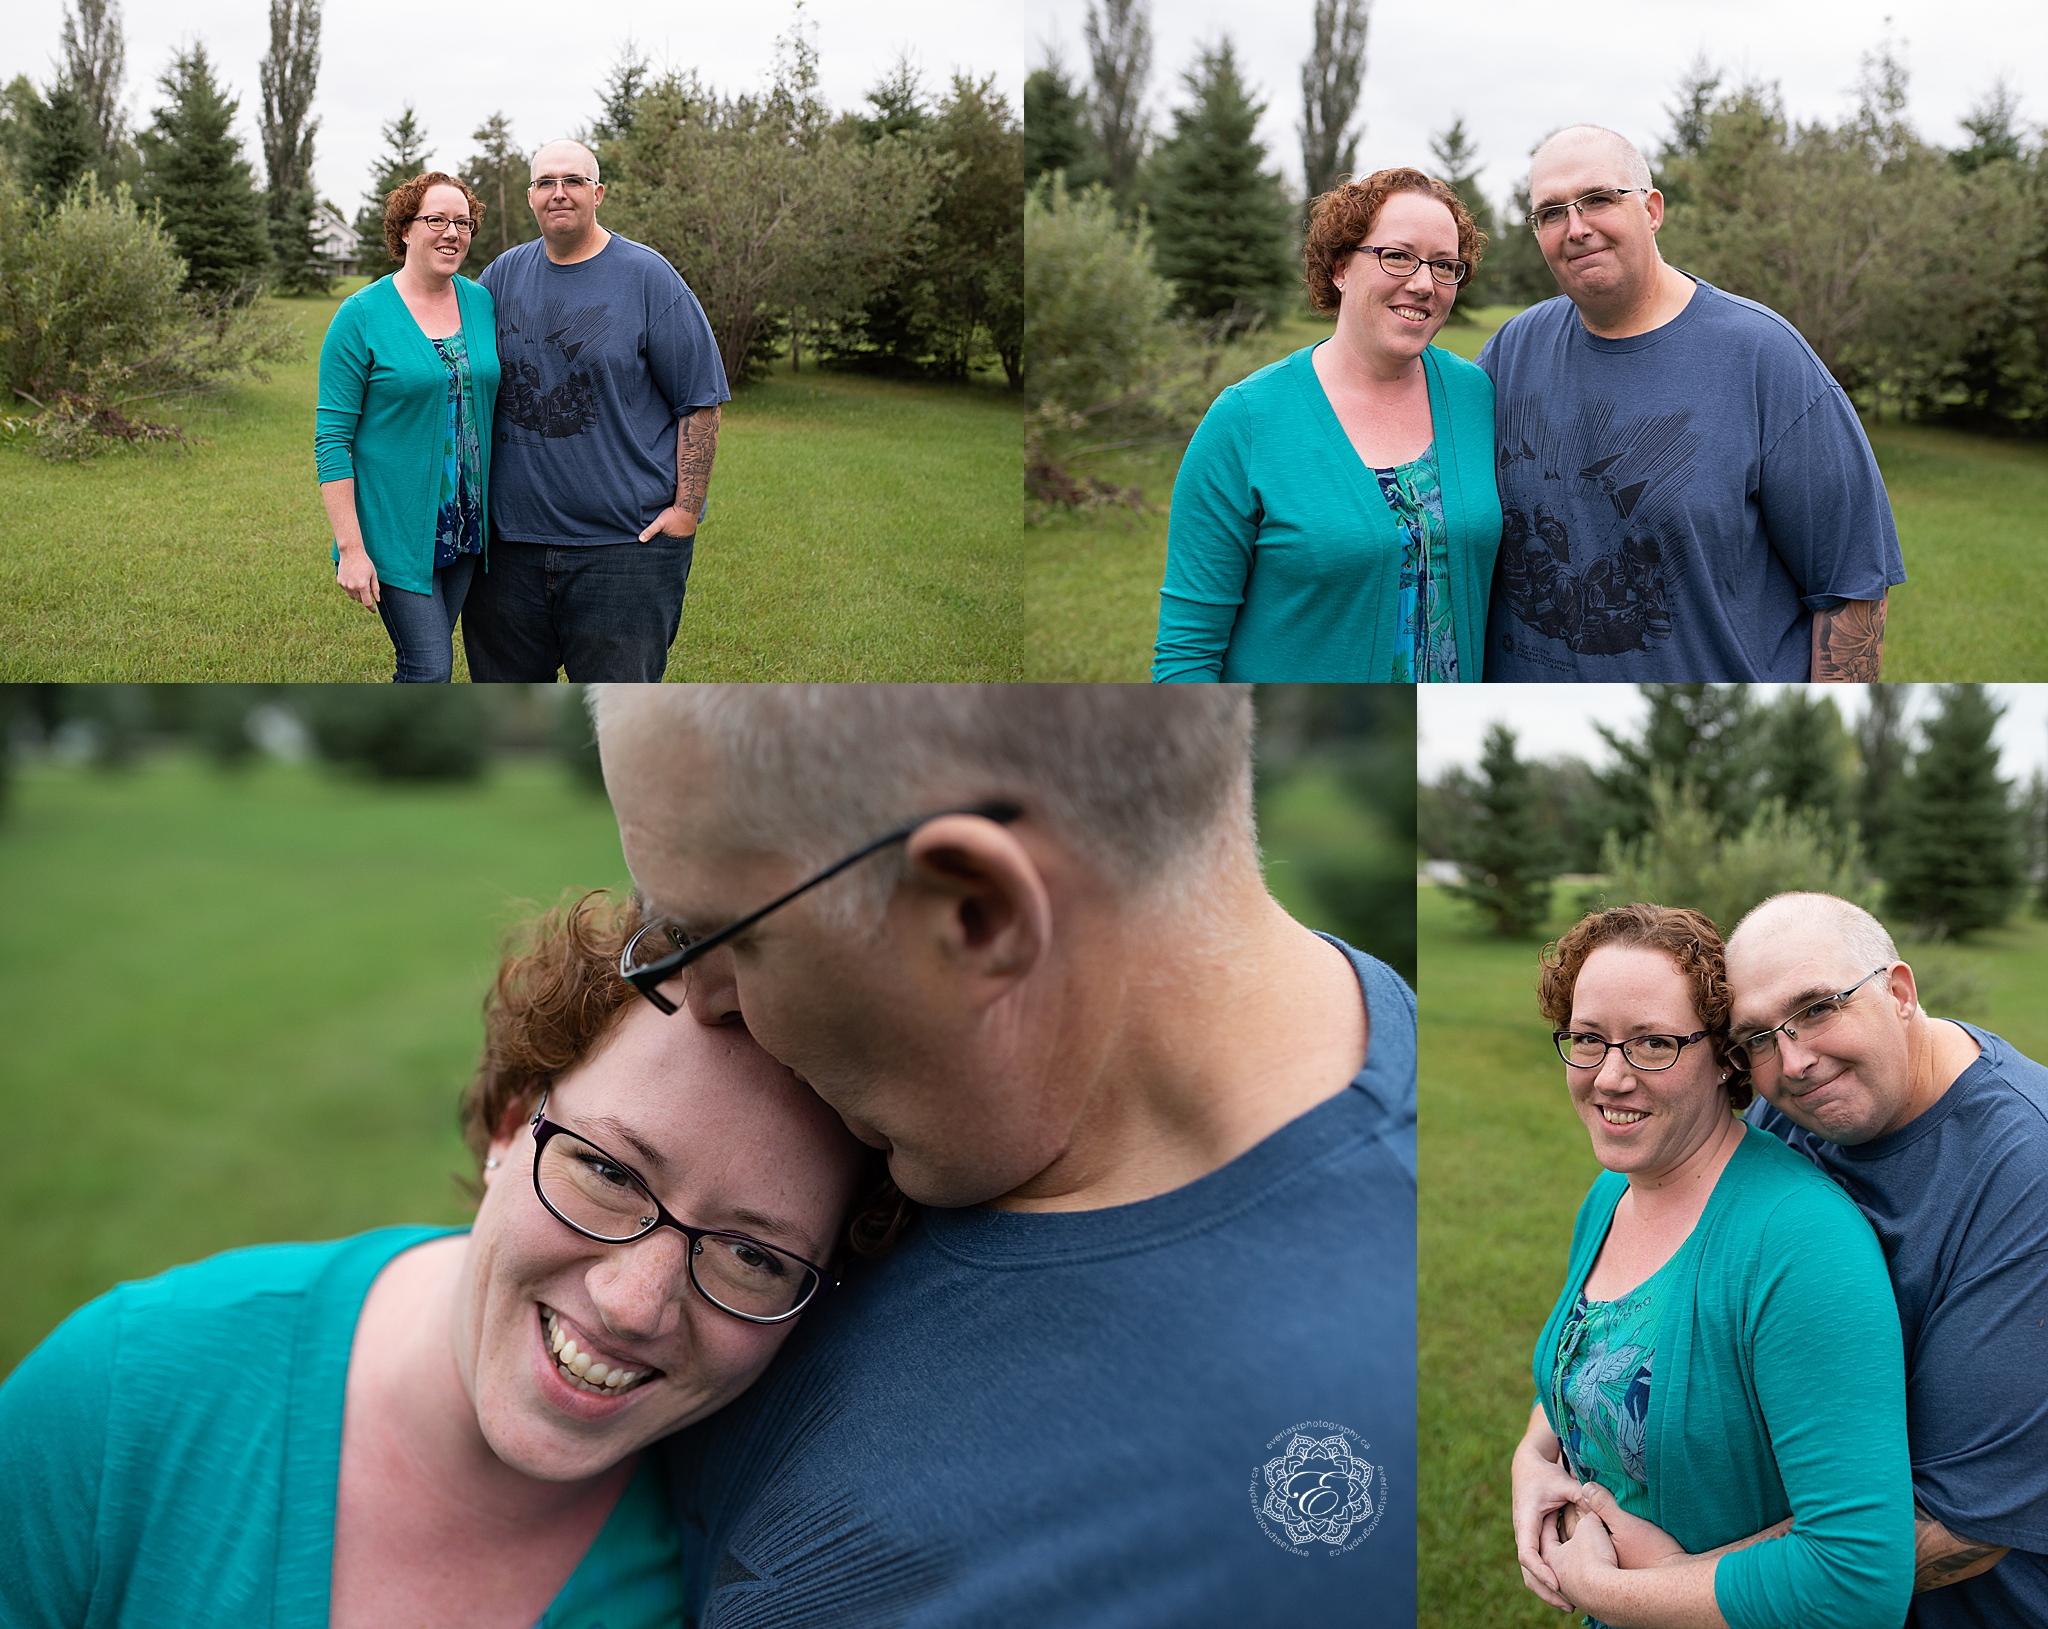 couples-family-photographer-edmonton.jpg